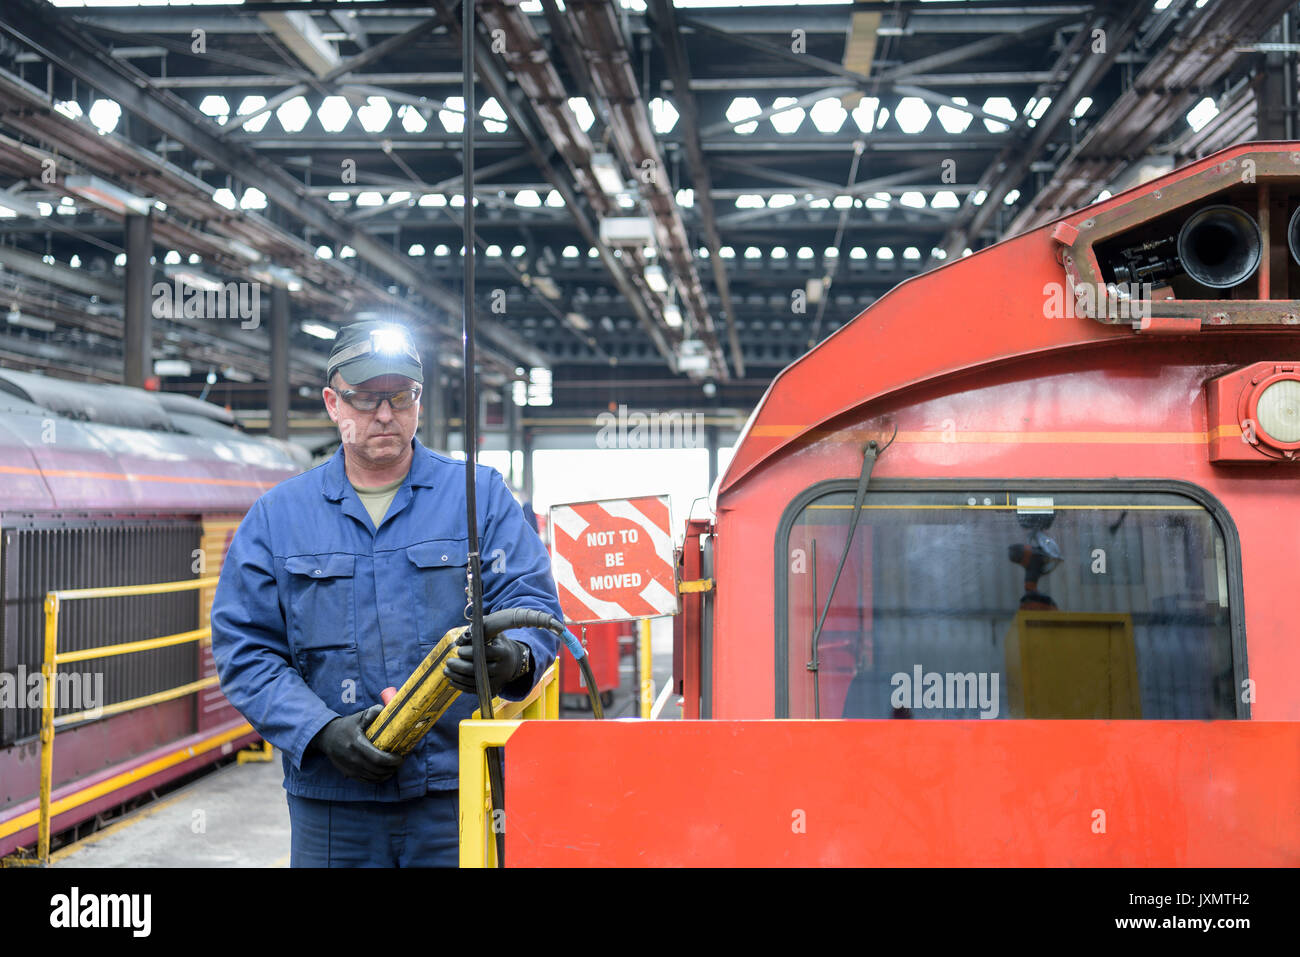 Locomotive engineer working in train works - Stock Image